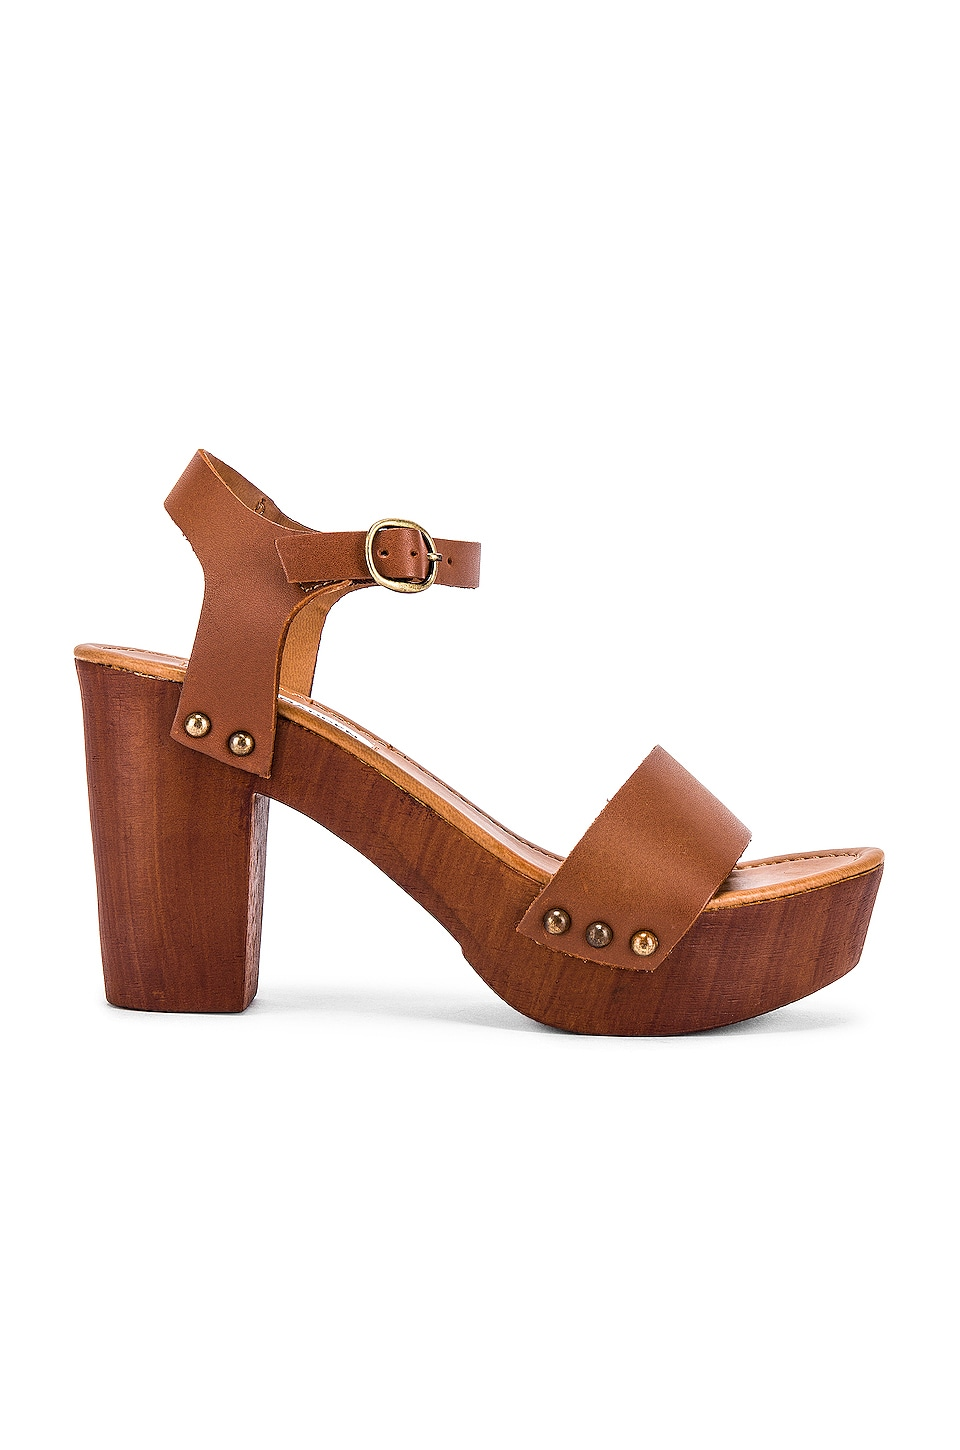 Steve Madden Luna Platform in Tan Leather